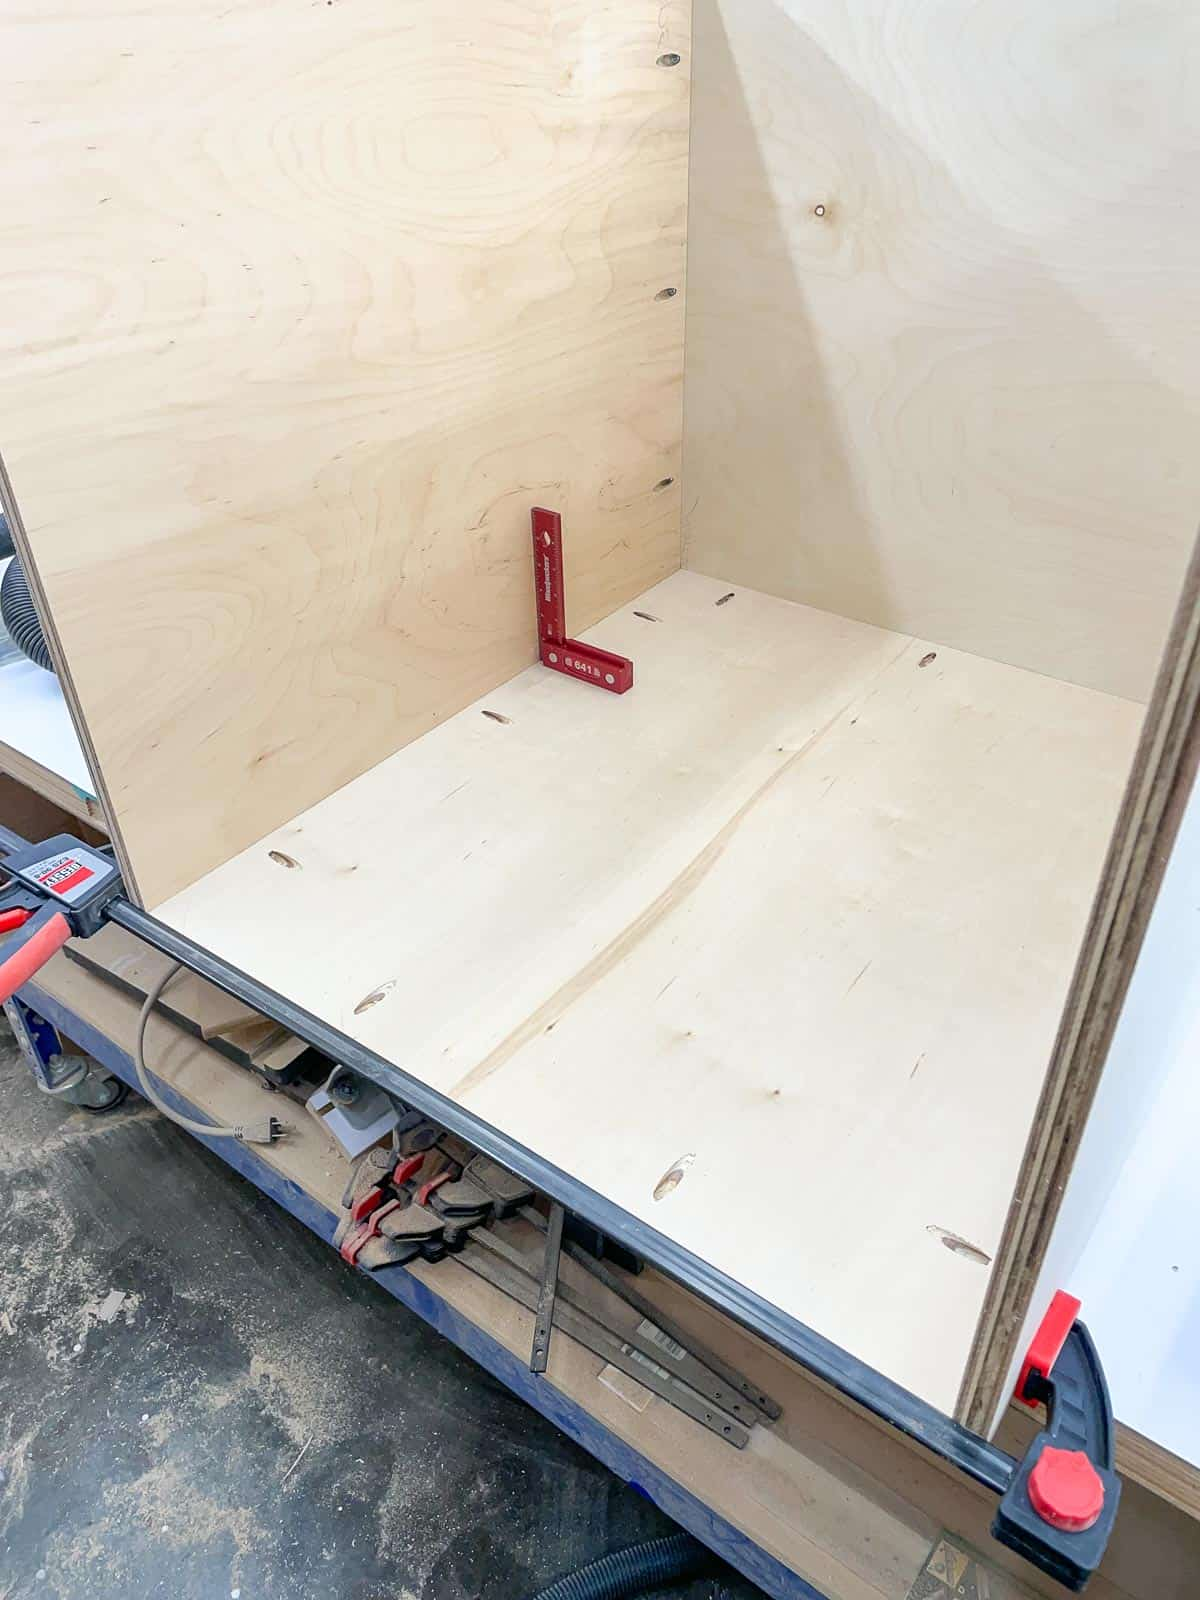 attaching the back of the router table stand to the sides with pocket hole screws